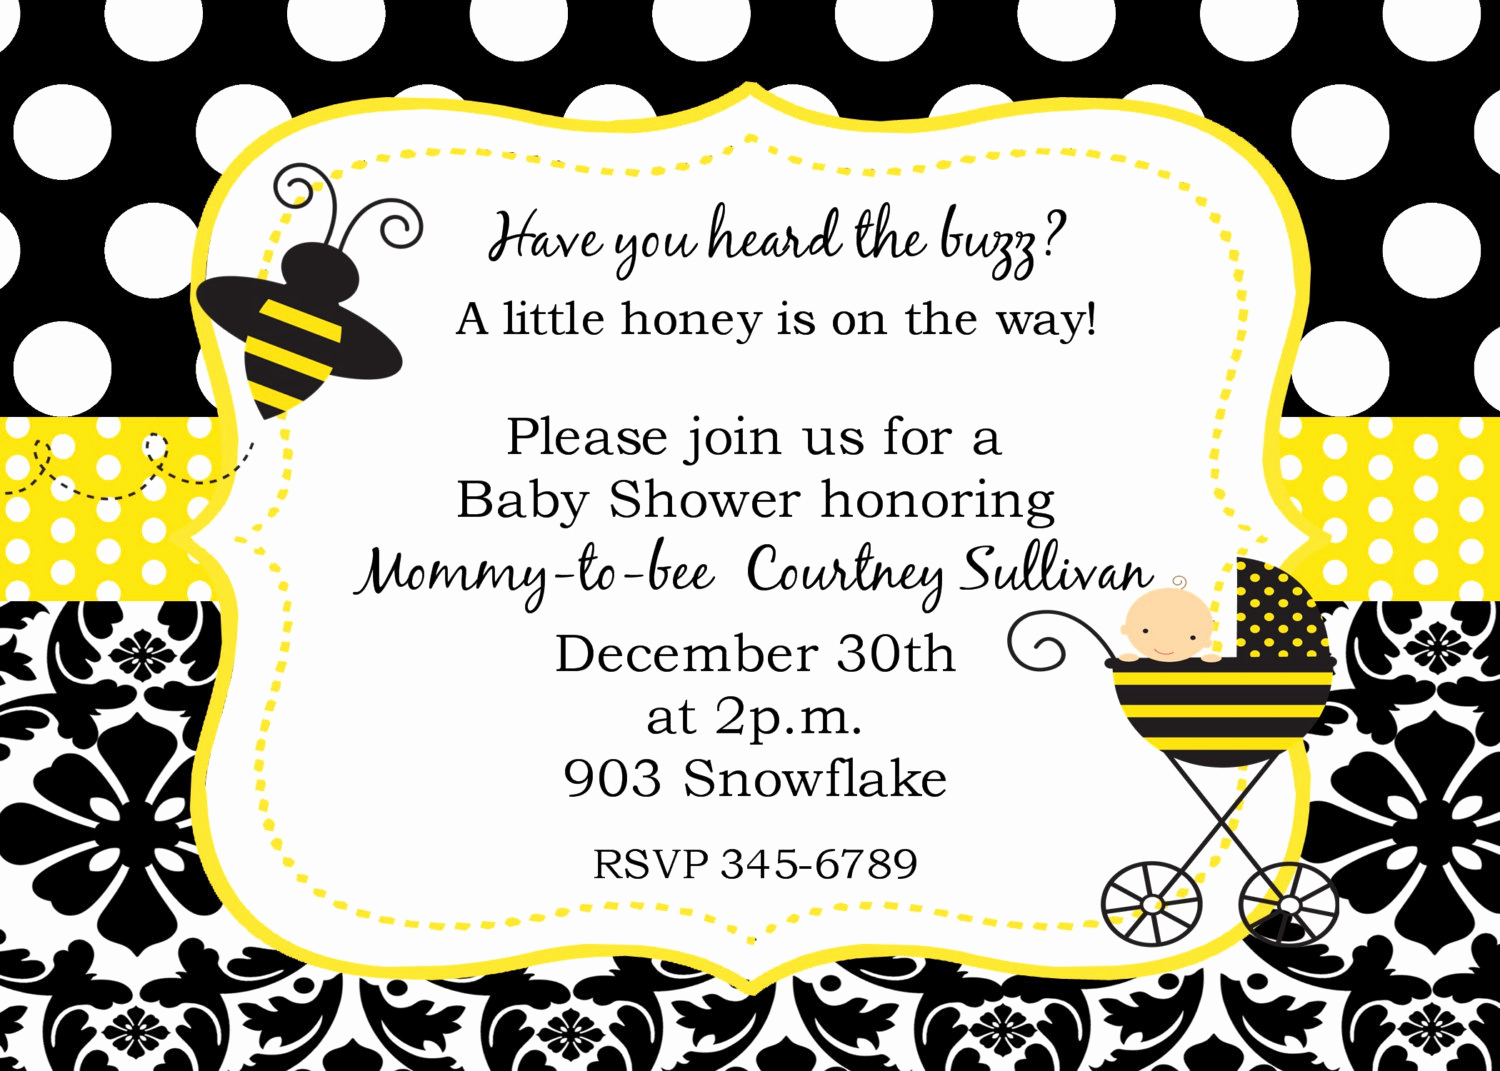 Free Bumble Bee Invitation Template Elegant Bumble Bee Baby Shower Invitations Digital or Printable File